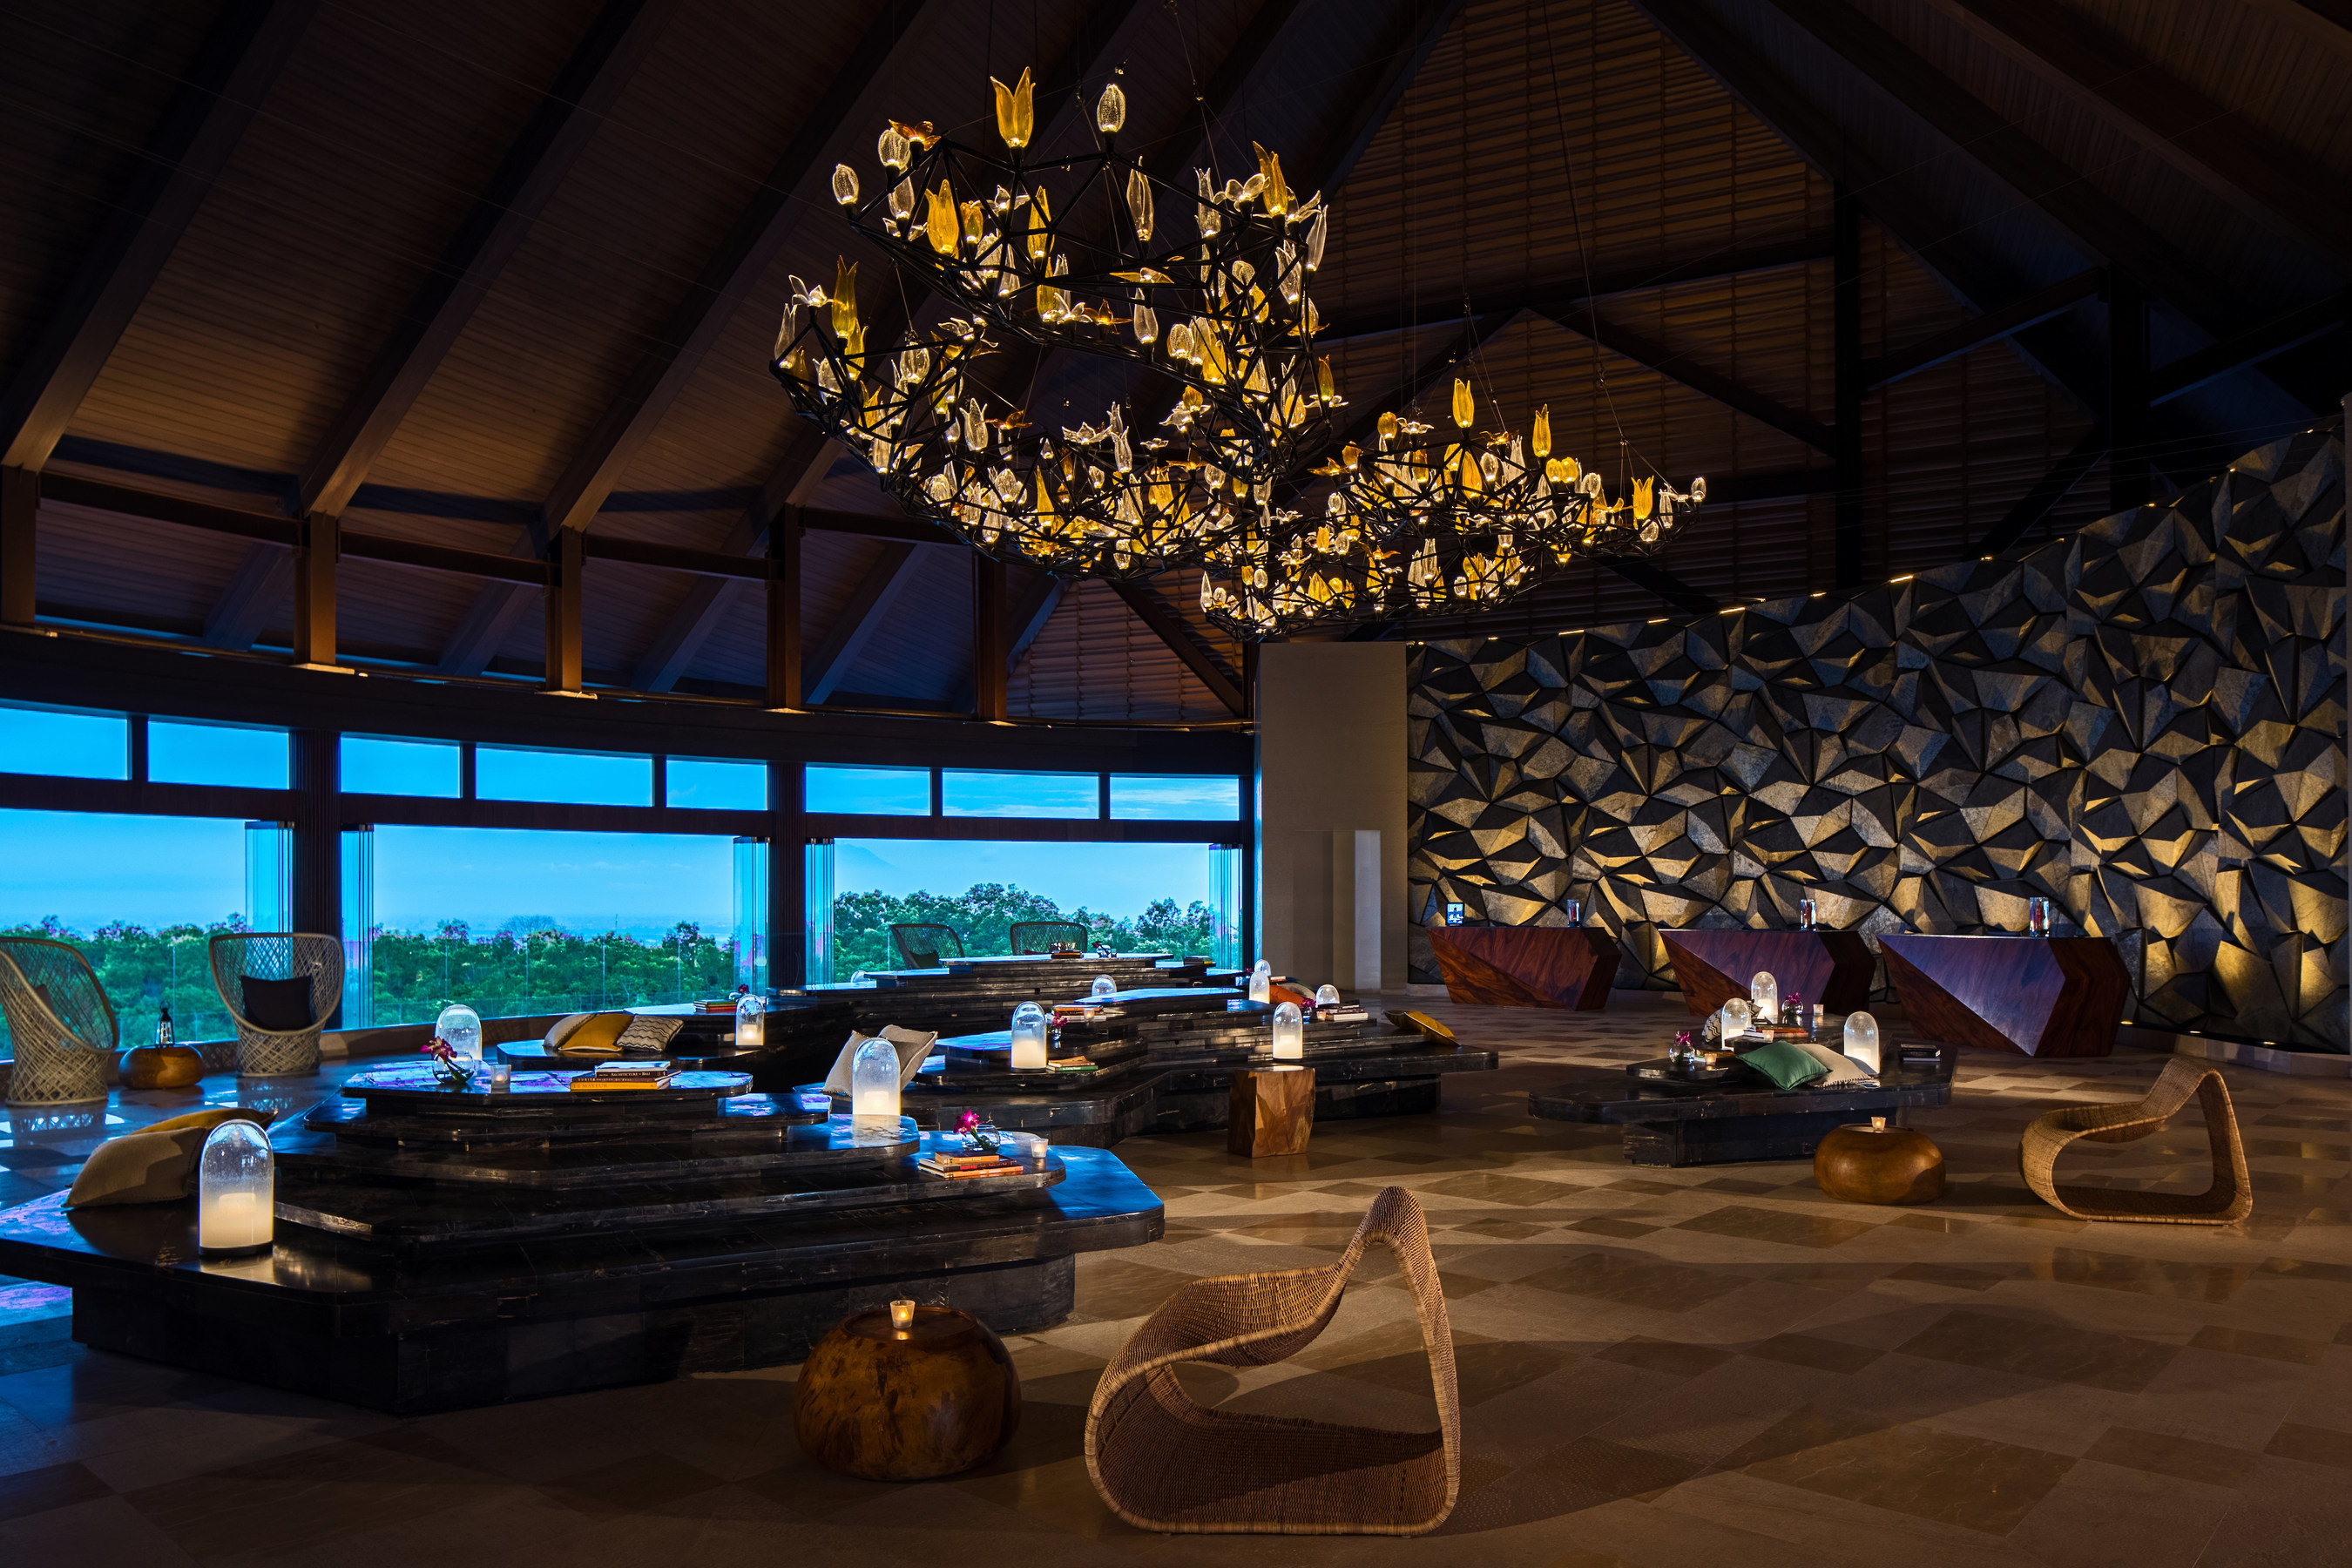 Renaissance Hotels Debuts In Indonesia With The Opening Of Renaissance Bali Uluwatu Resort Spa